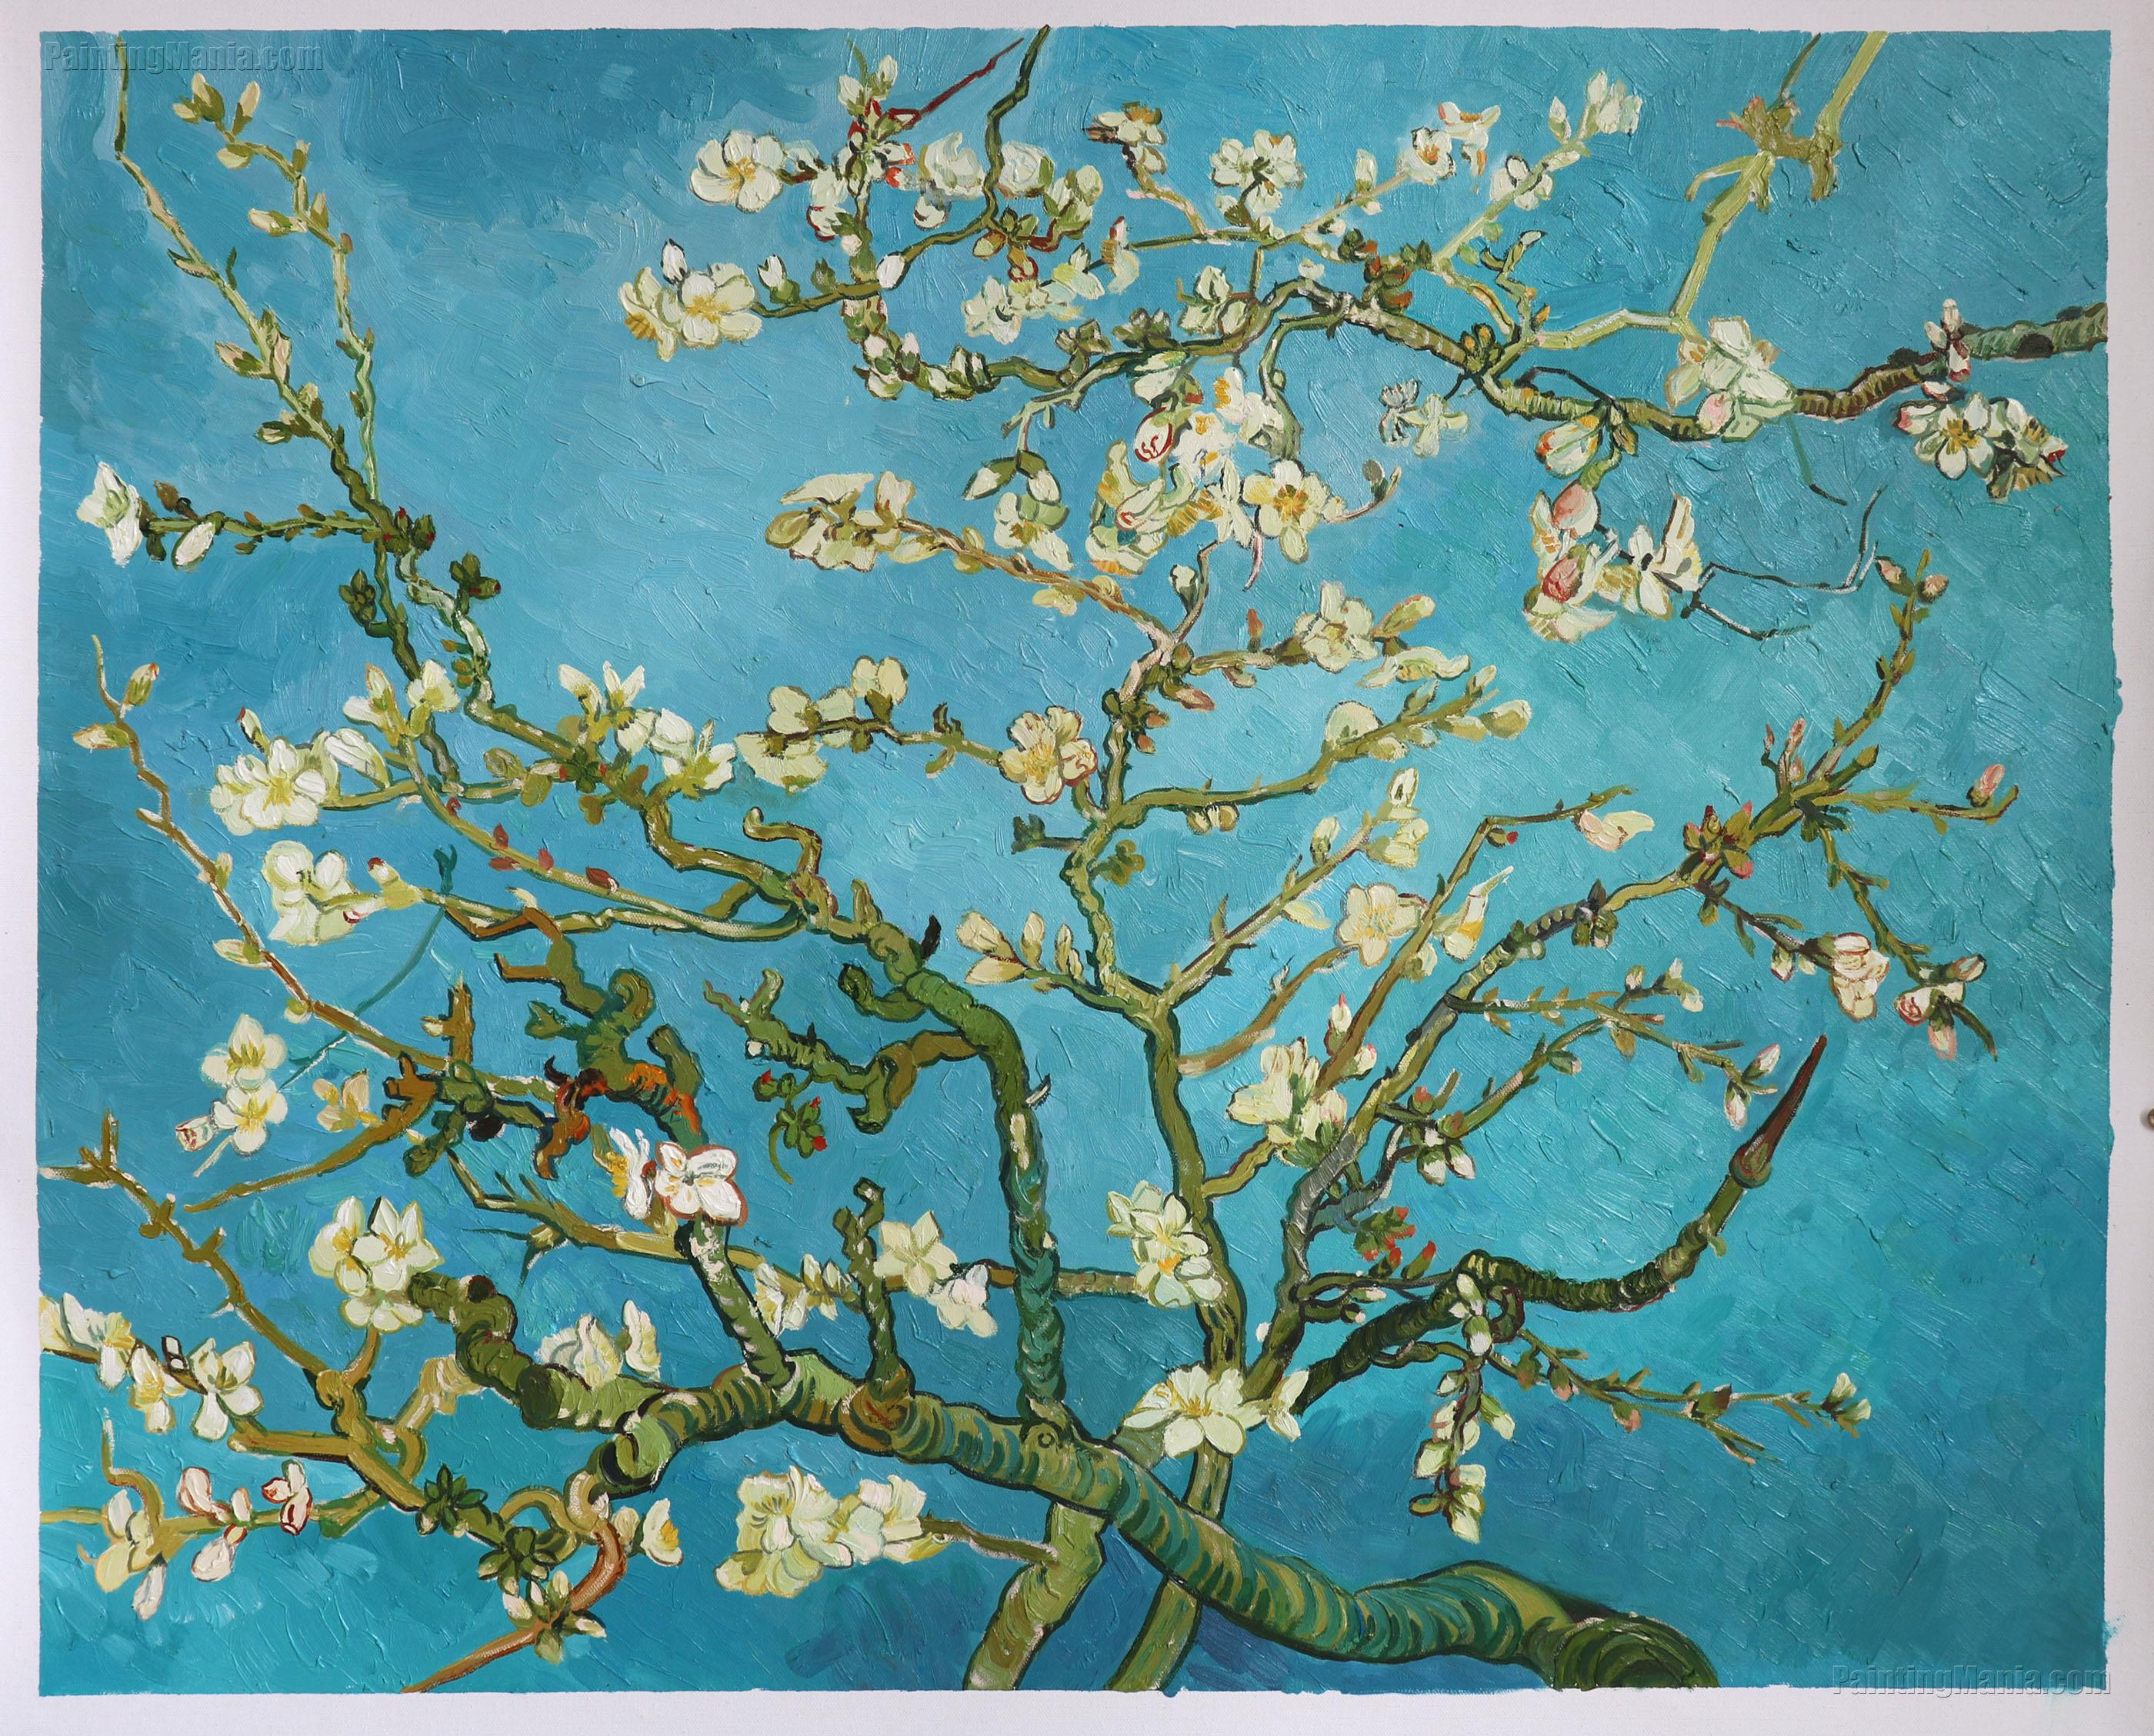 Mandelblüte Van Gogh Branches With Almond Blossom 1885 Vincent Van Gogh Paintings